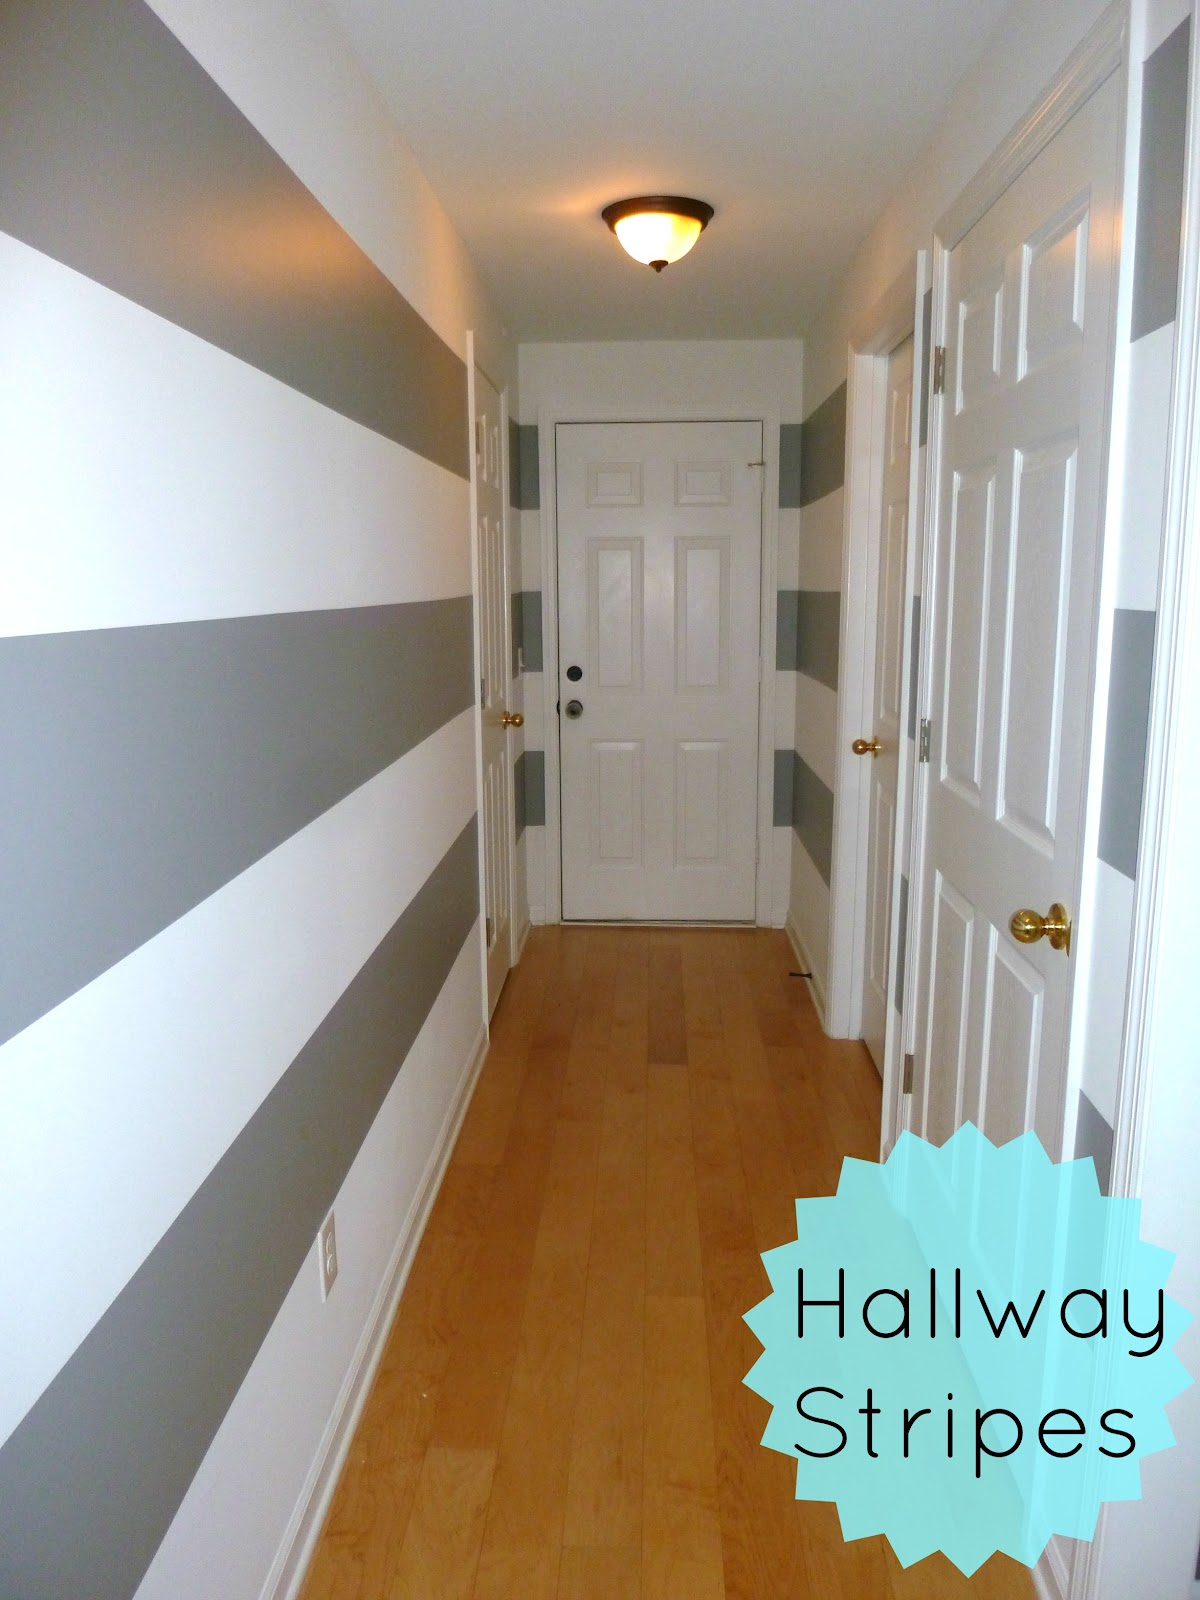 Wall Painting Designs For Hall Feathers And Sunshine Striped Hallway Part 1